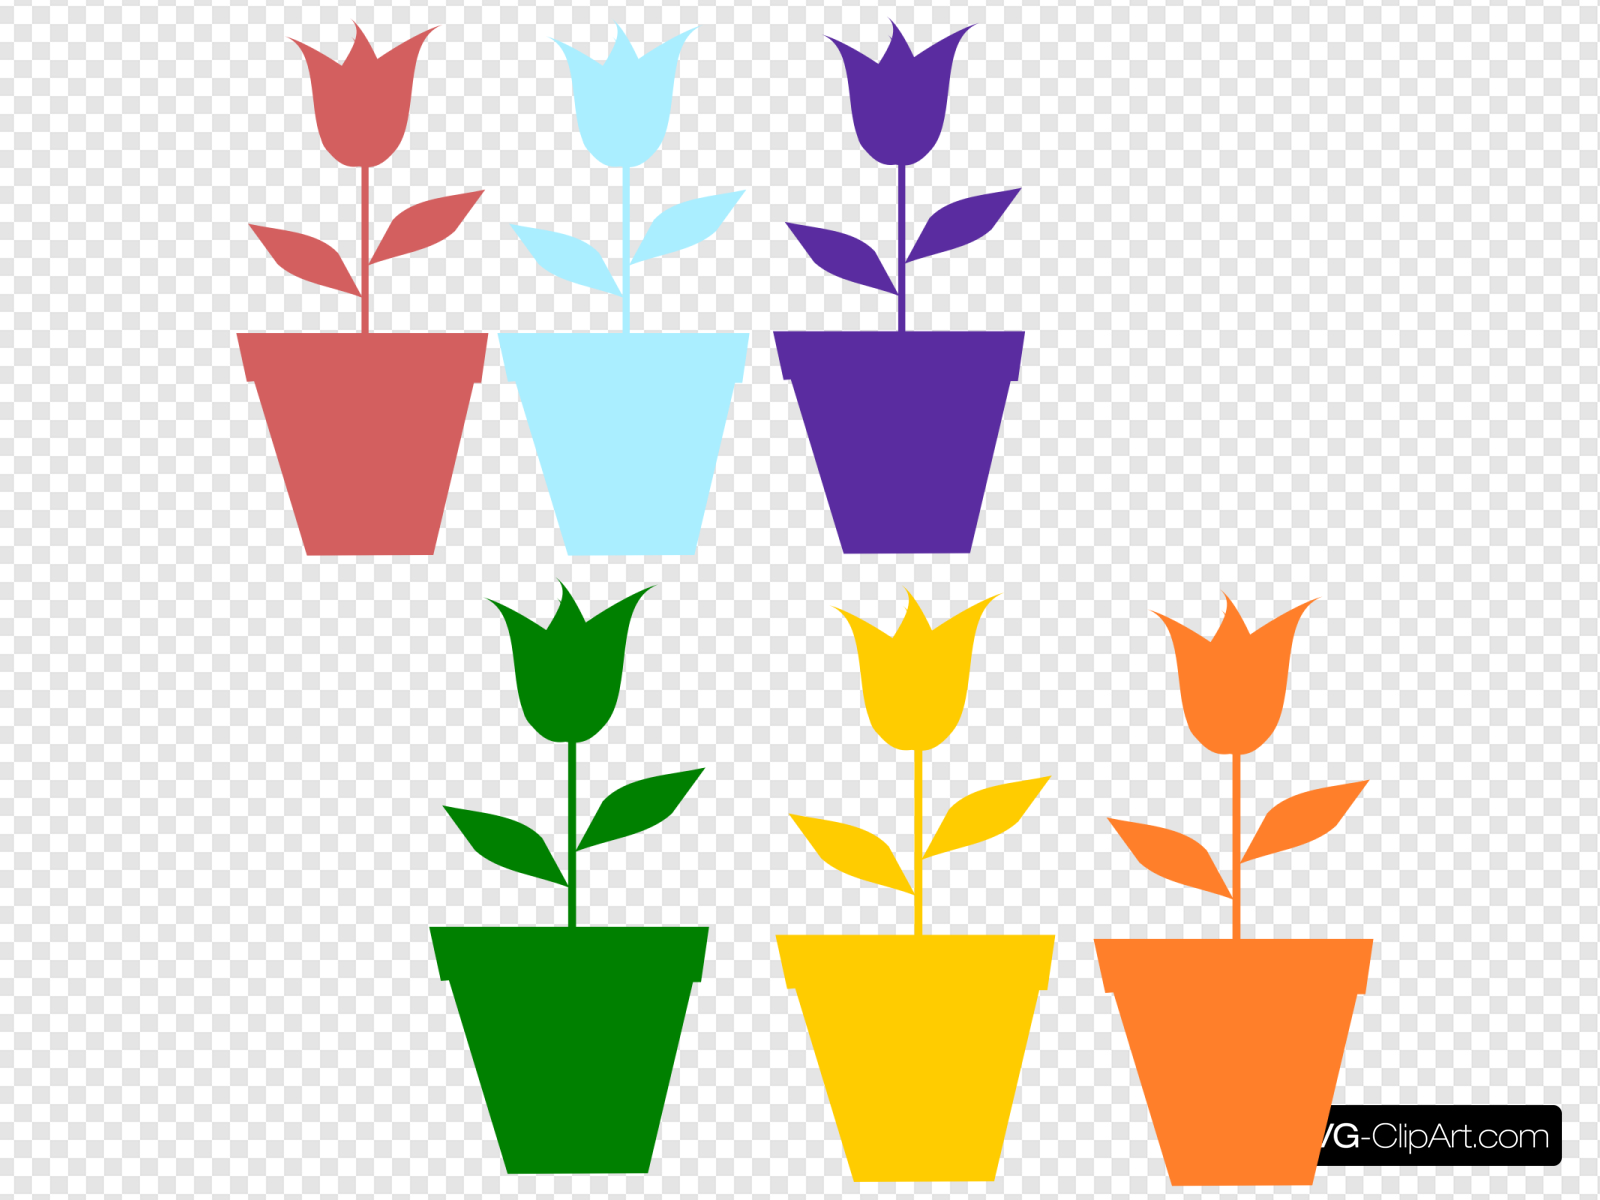 Tulips In Pot Silhouettes Clip art, Icon and SVG.